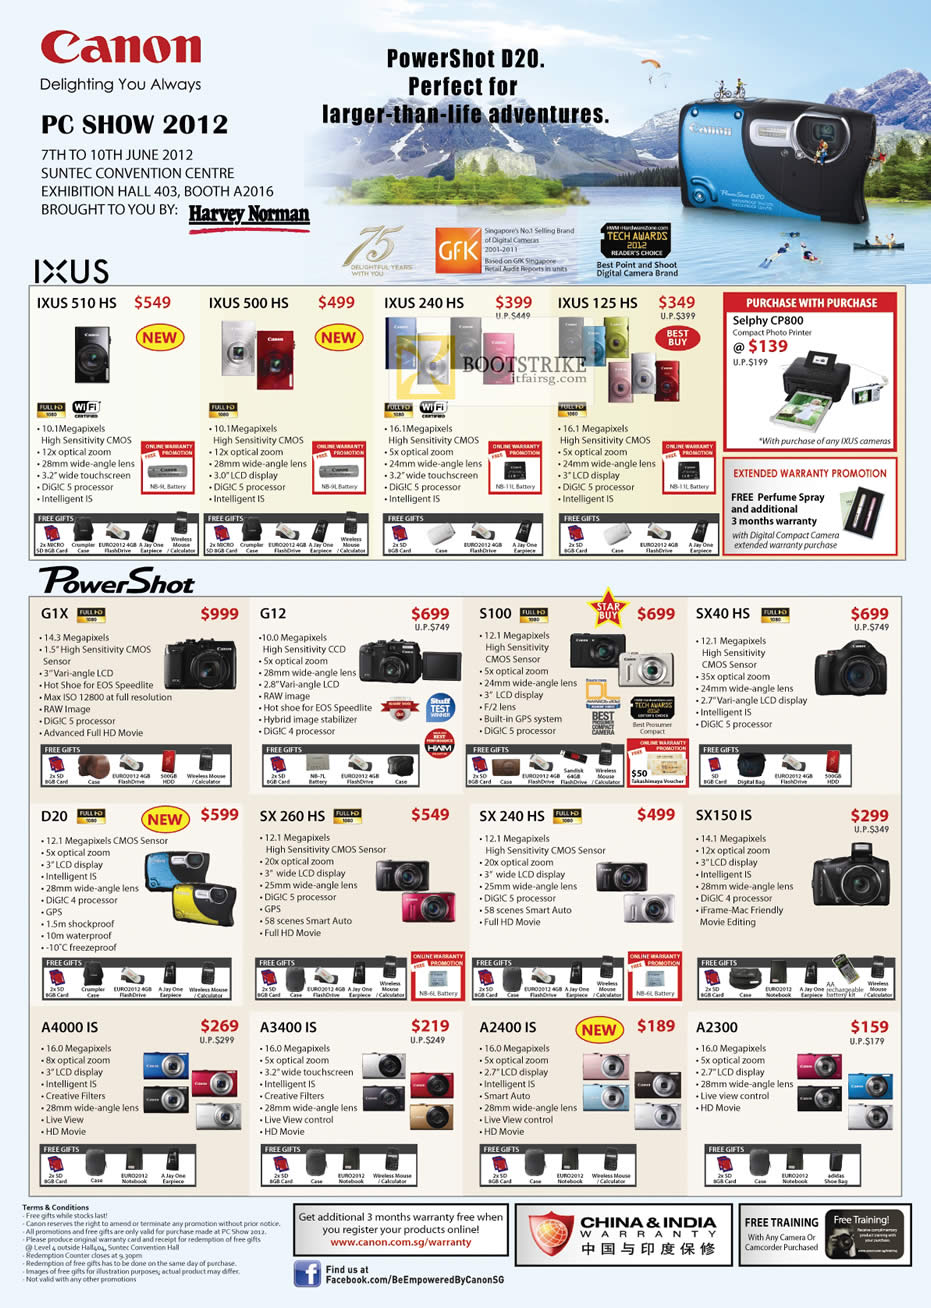 PC SHOW 2012 price list image brochure of Canon Digital Cameras IXUS 510HS, 500 HS, 240 HS, IXUS 125 HS, G1X, G12, S100, SX40 HS, D20